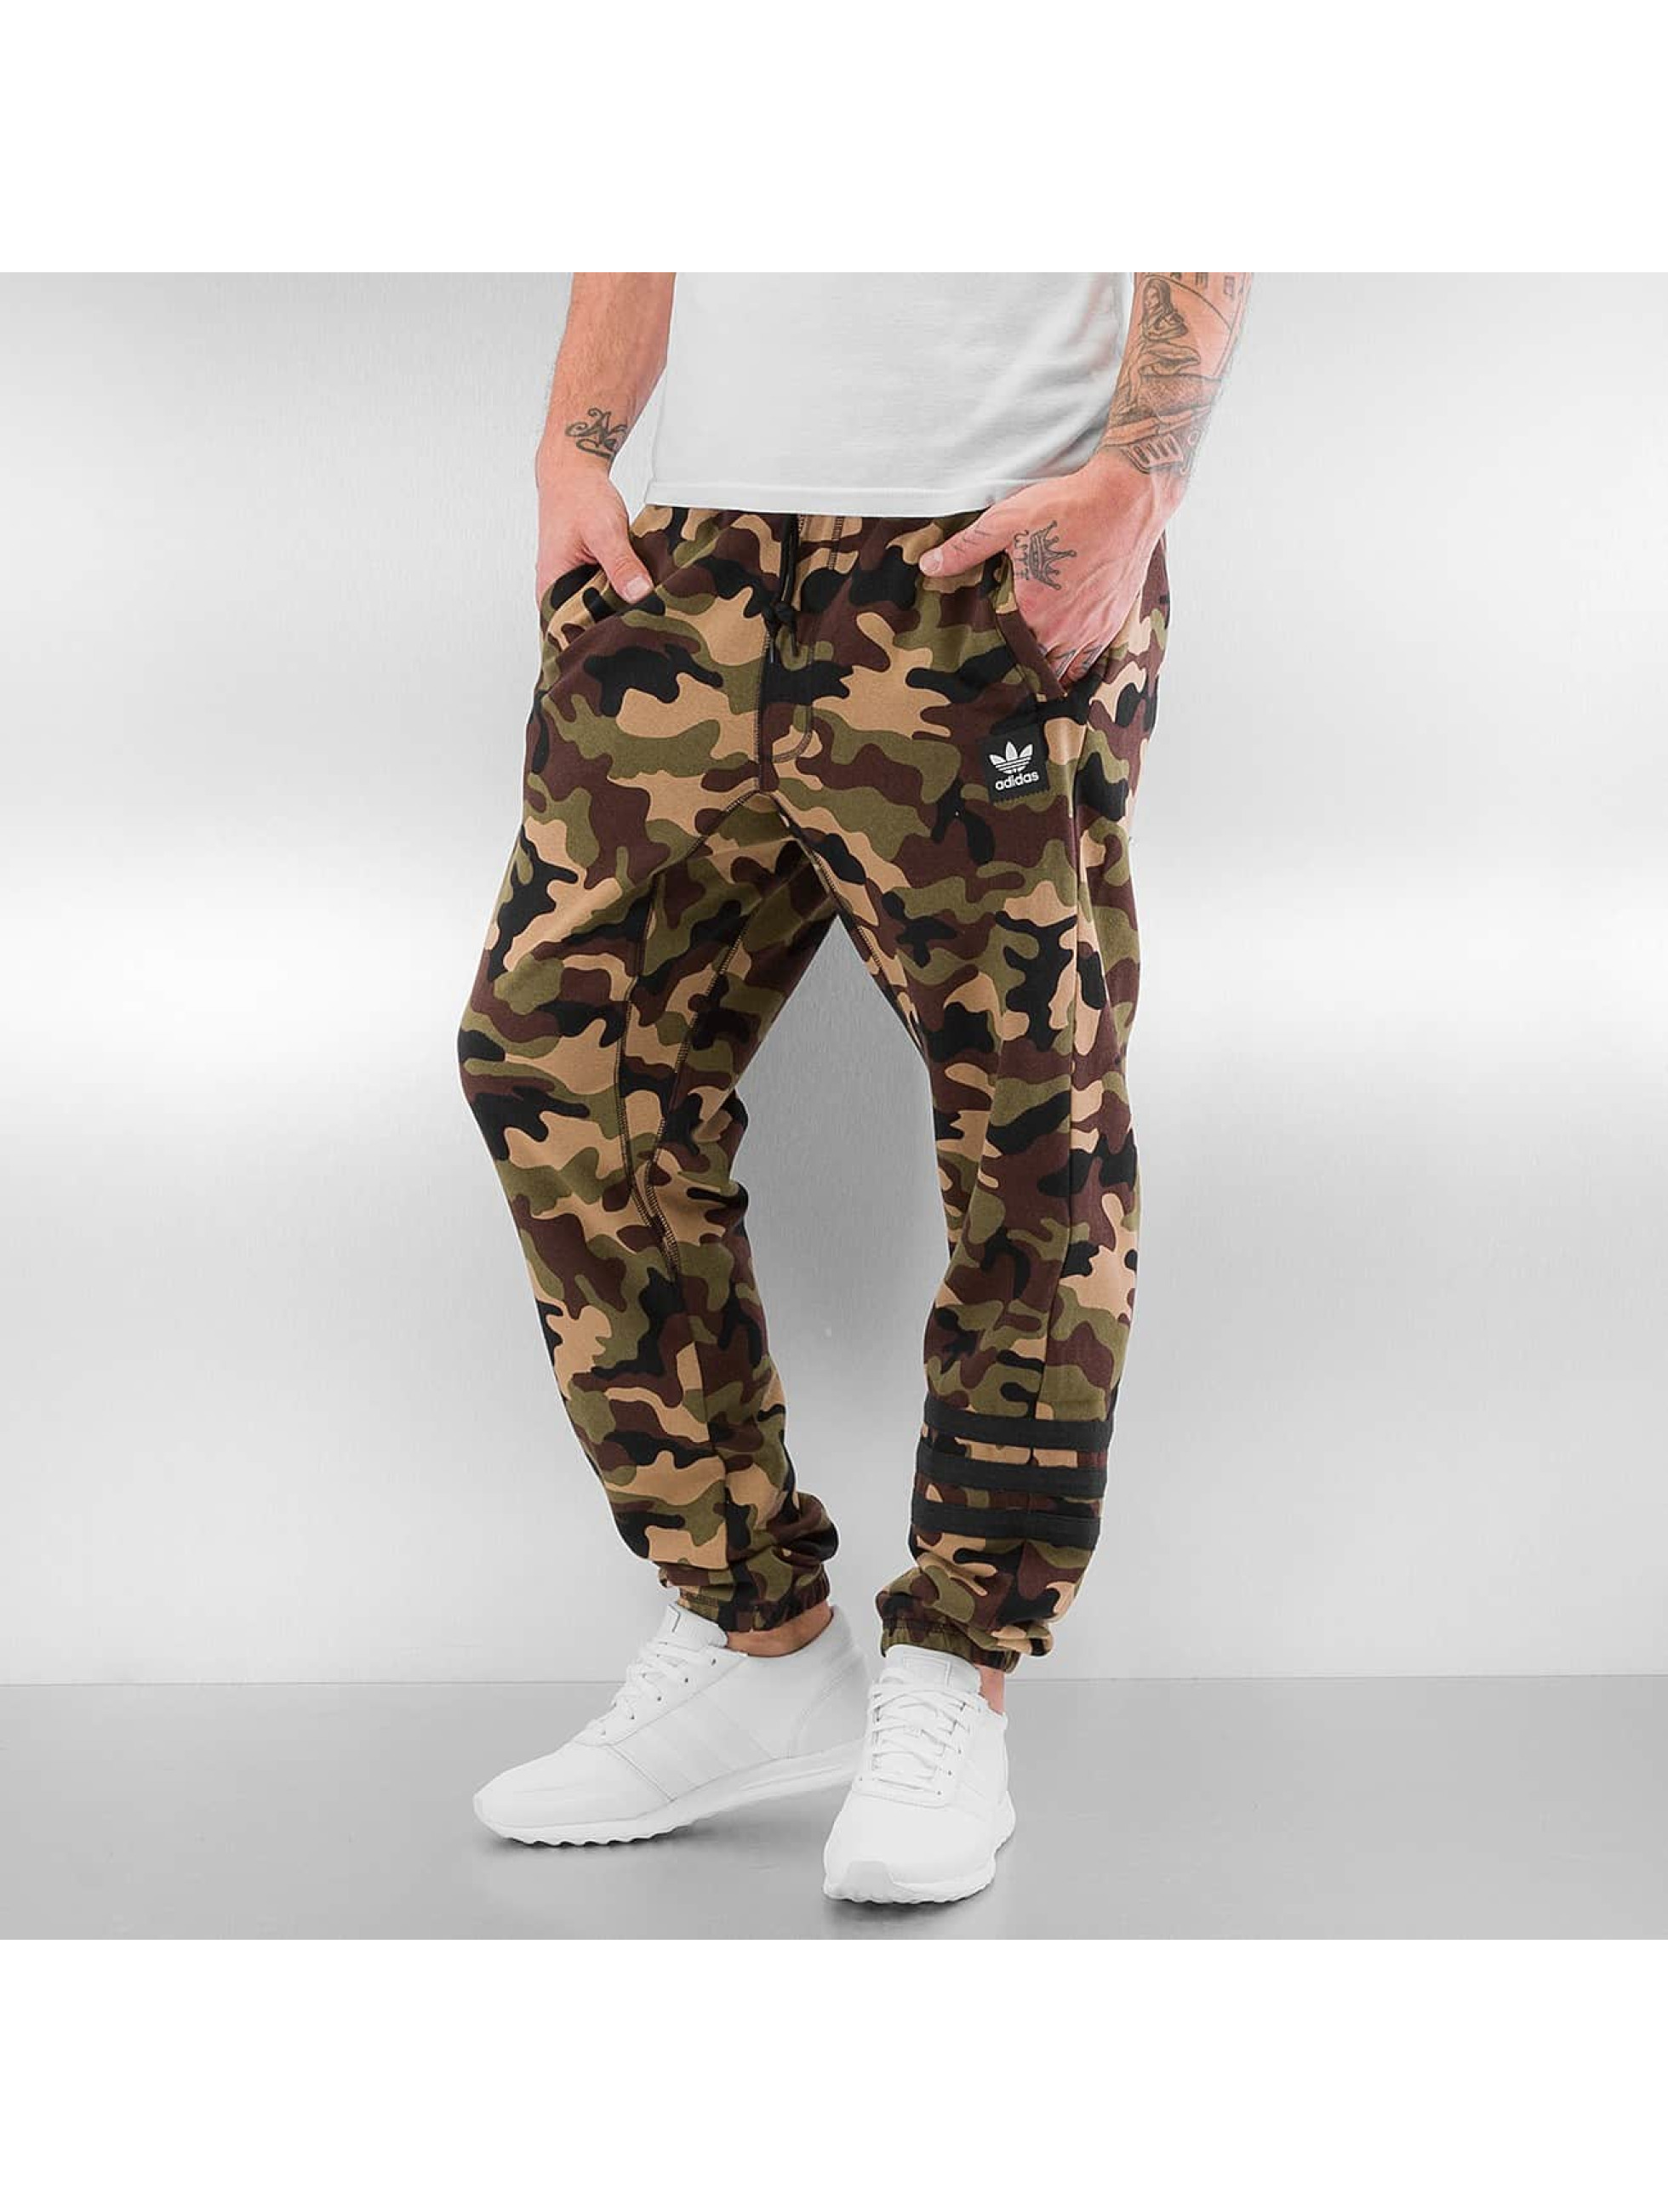 adidas jogginghose uncamo in camouflage 286542. Black Bedroom Furniture Sets. Home Design Ideas